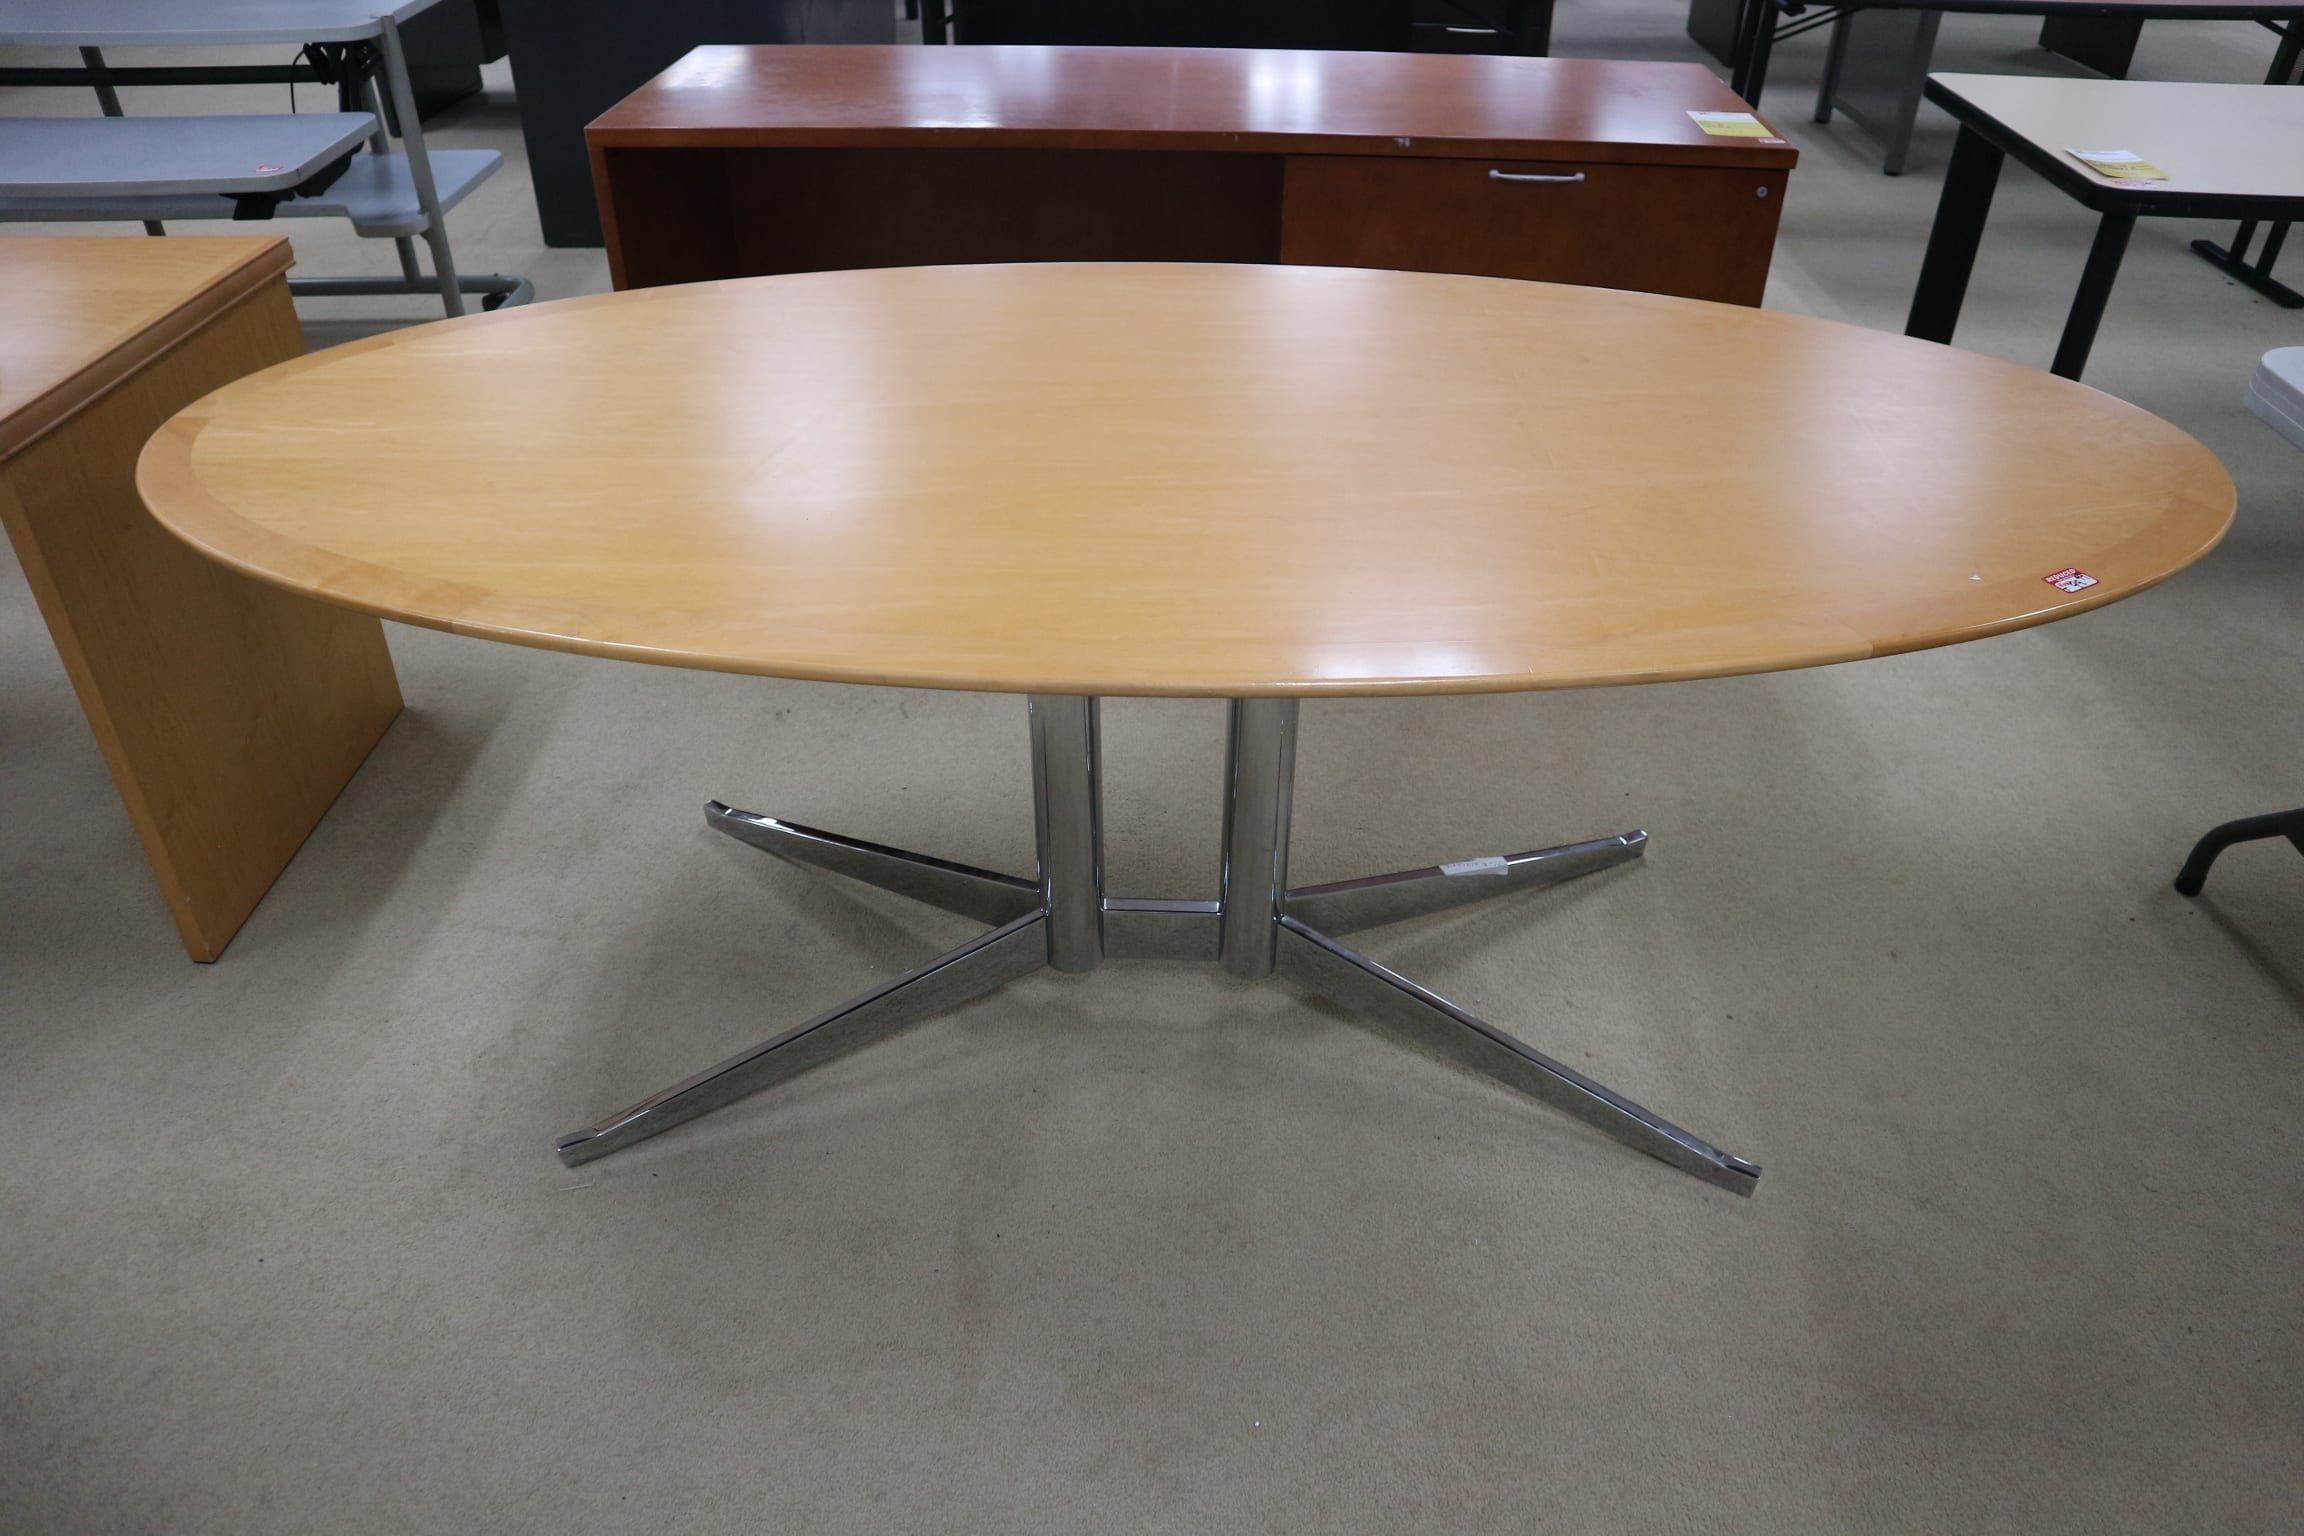 Break Room Tables Archives   Office Furniture Liquidations Inside 2018 Mcquade (View 13 of 15)